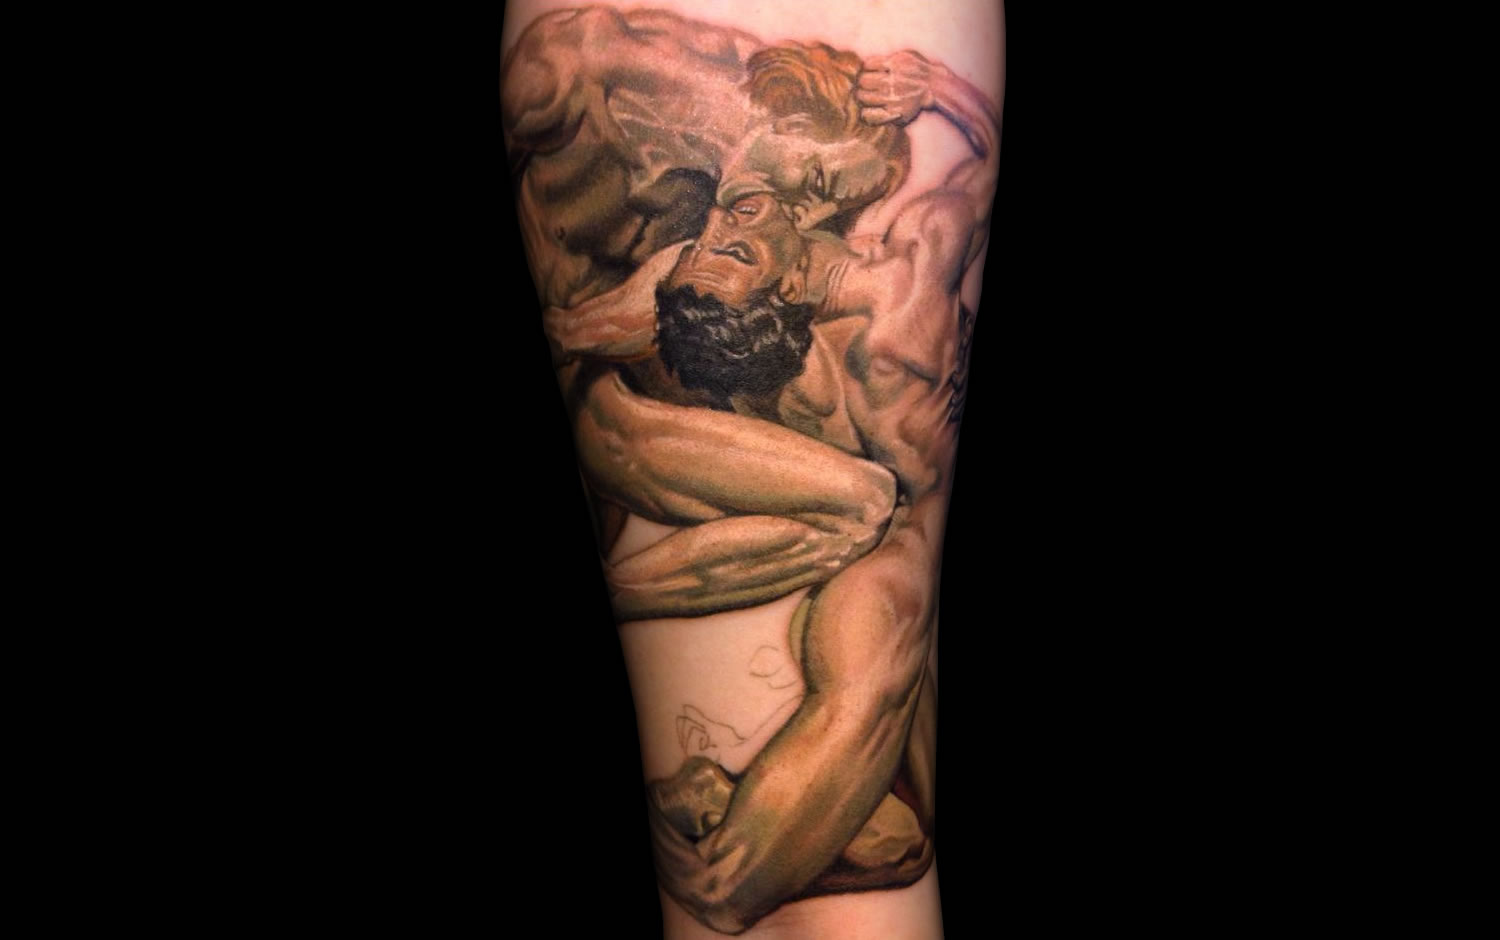 Dante and Virgil in Hell tattoo